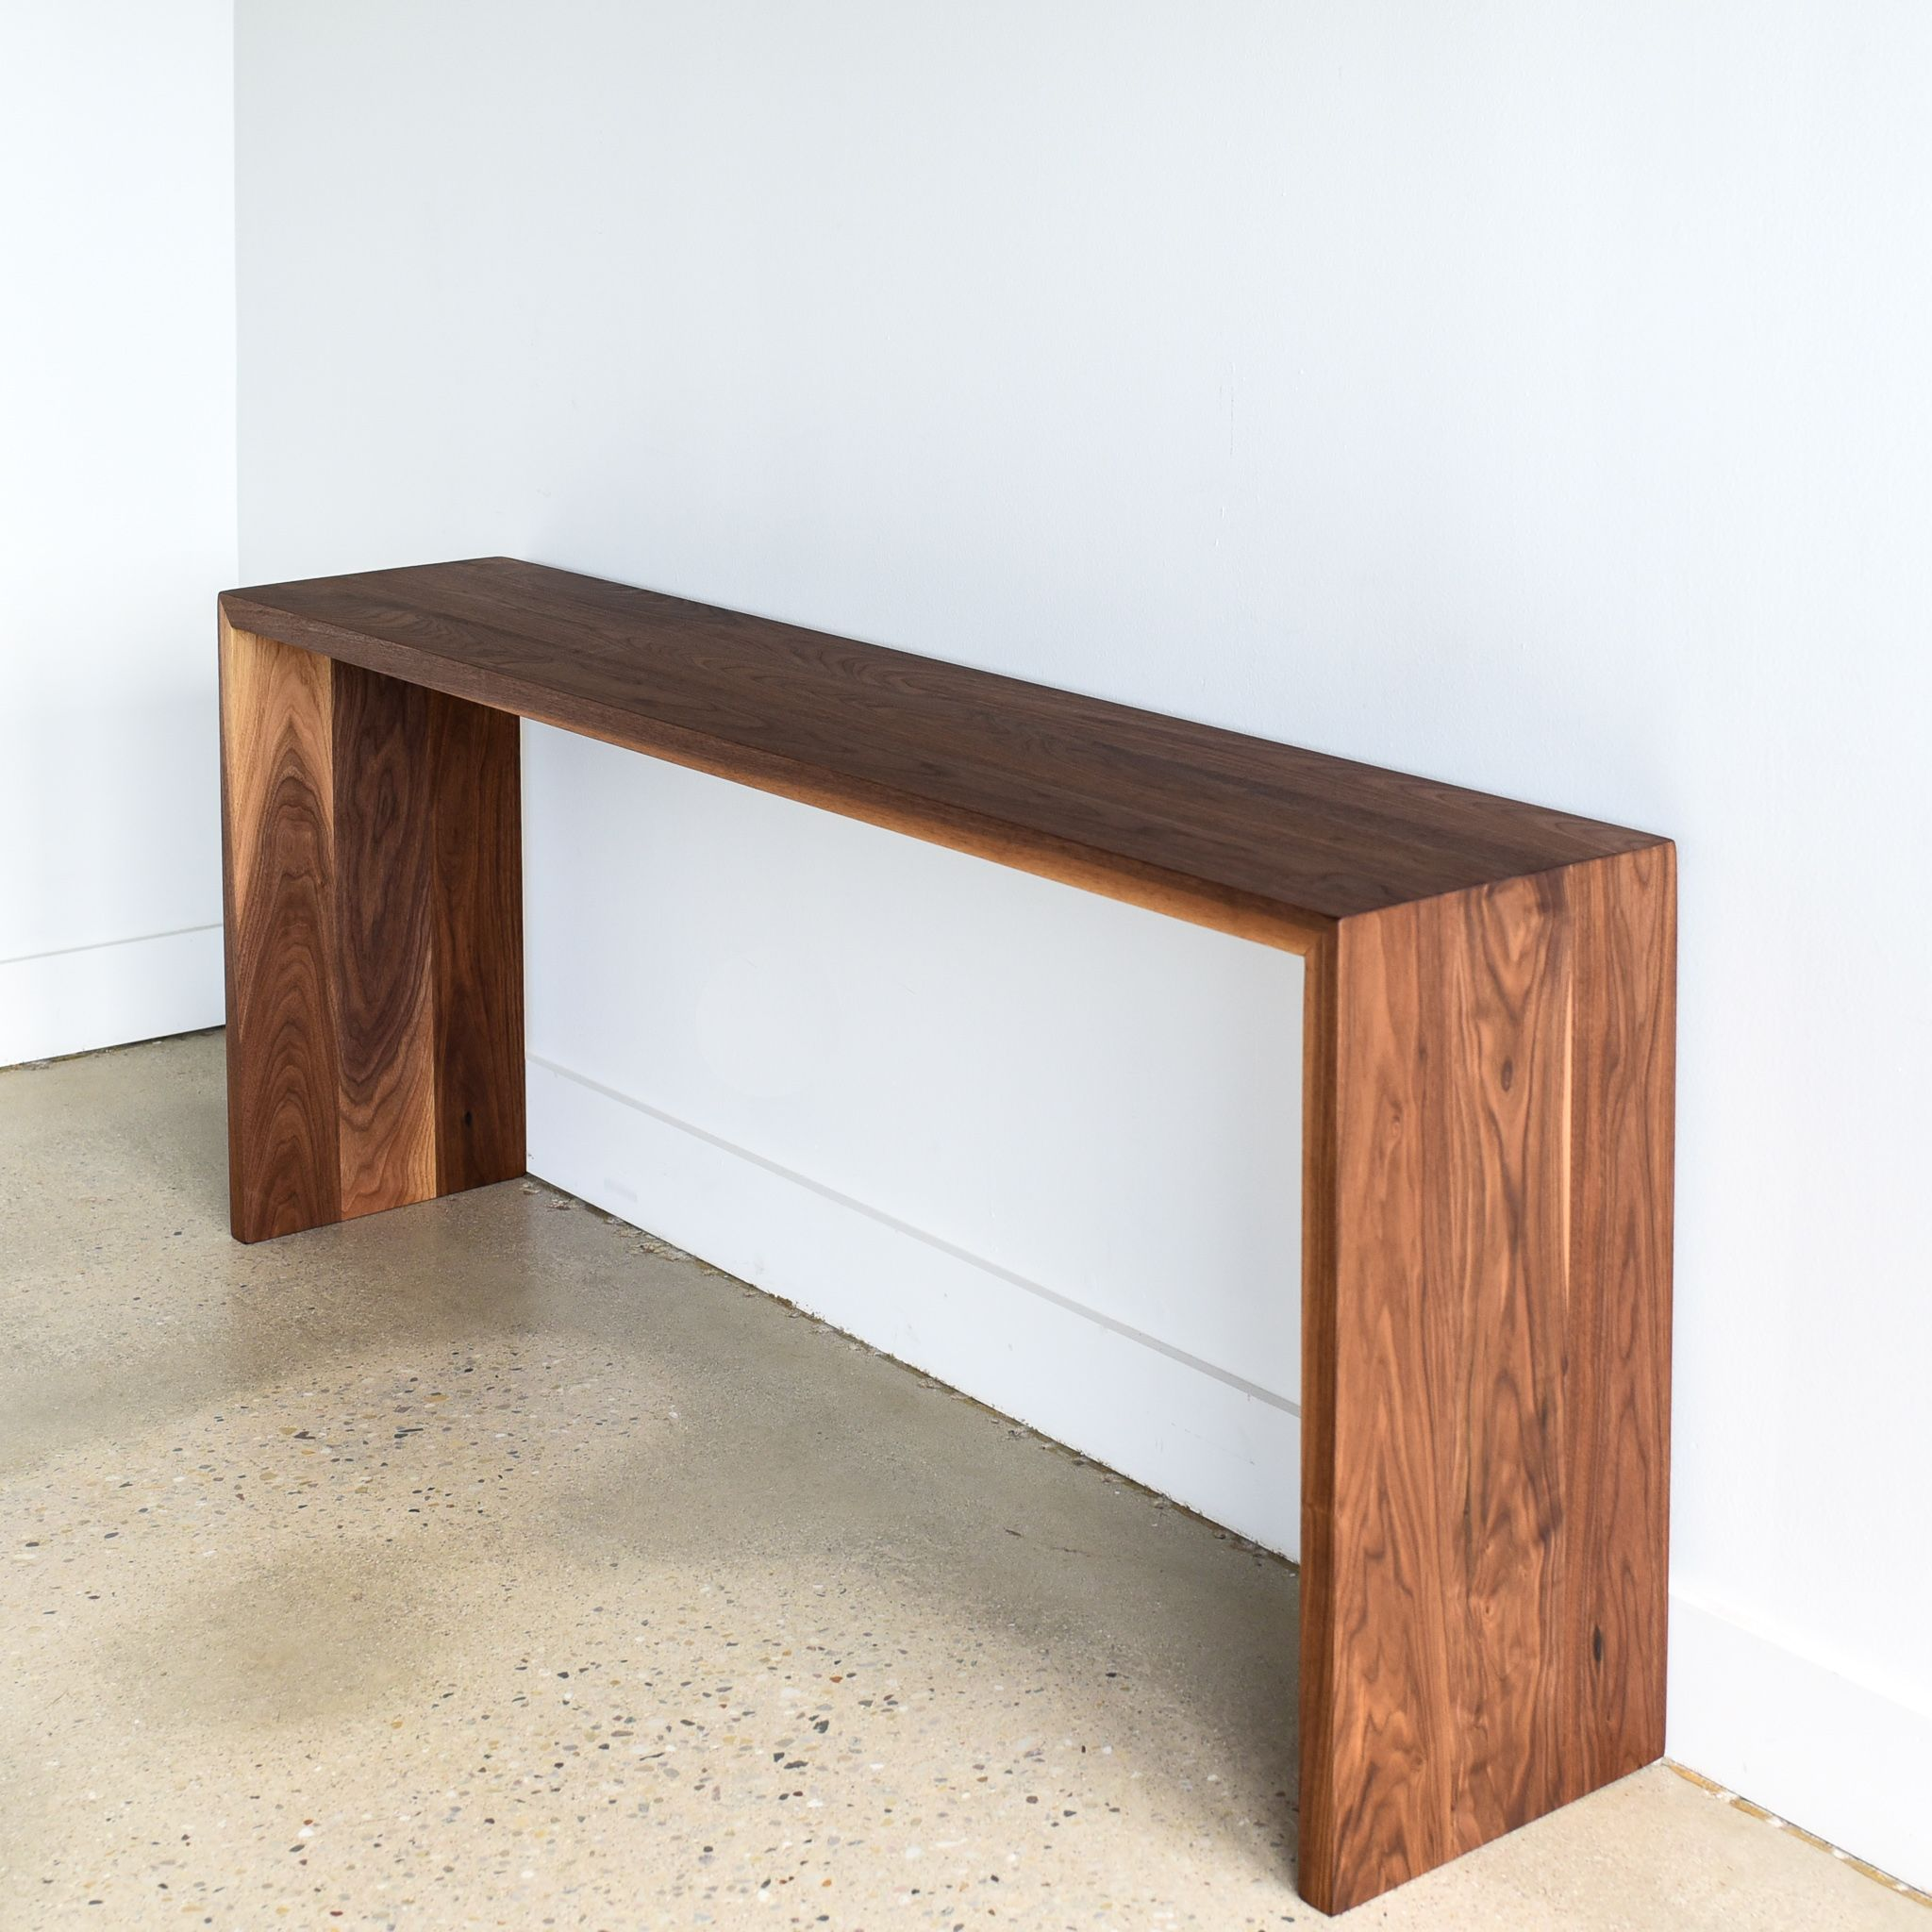 Google Image Result For Https Images Squarespace Cdn Com Content V1 5250c5ece4b0b7fca75 In 2020 Wood Console Table Modern Console Tables Reclaimed Wood Console Table